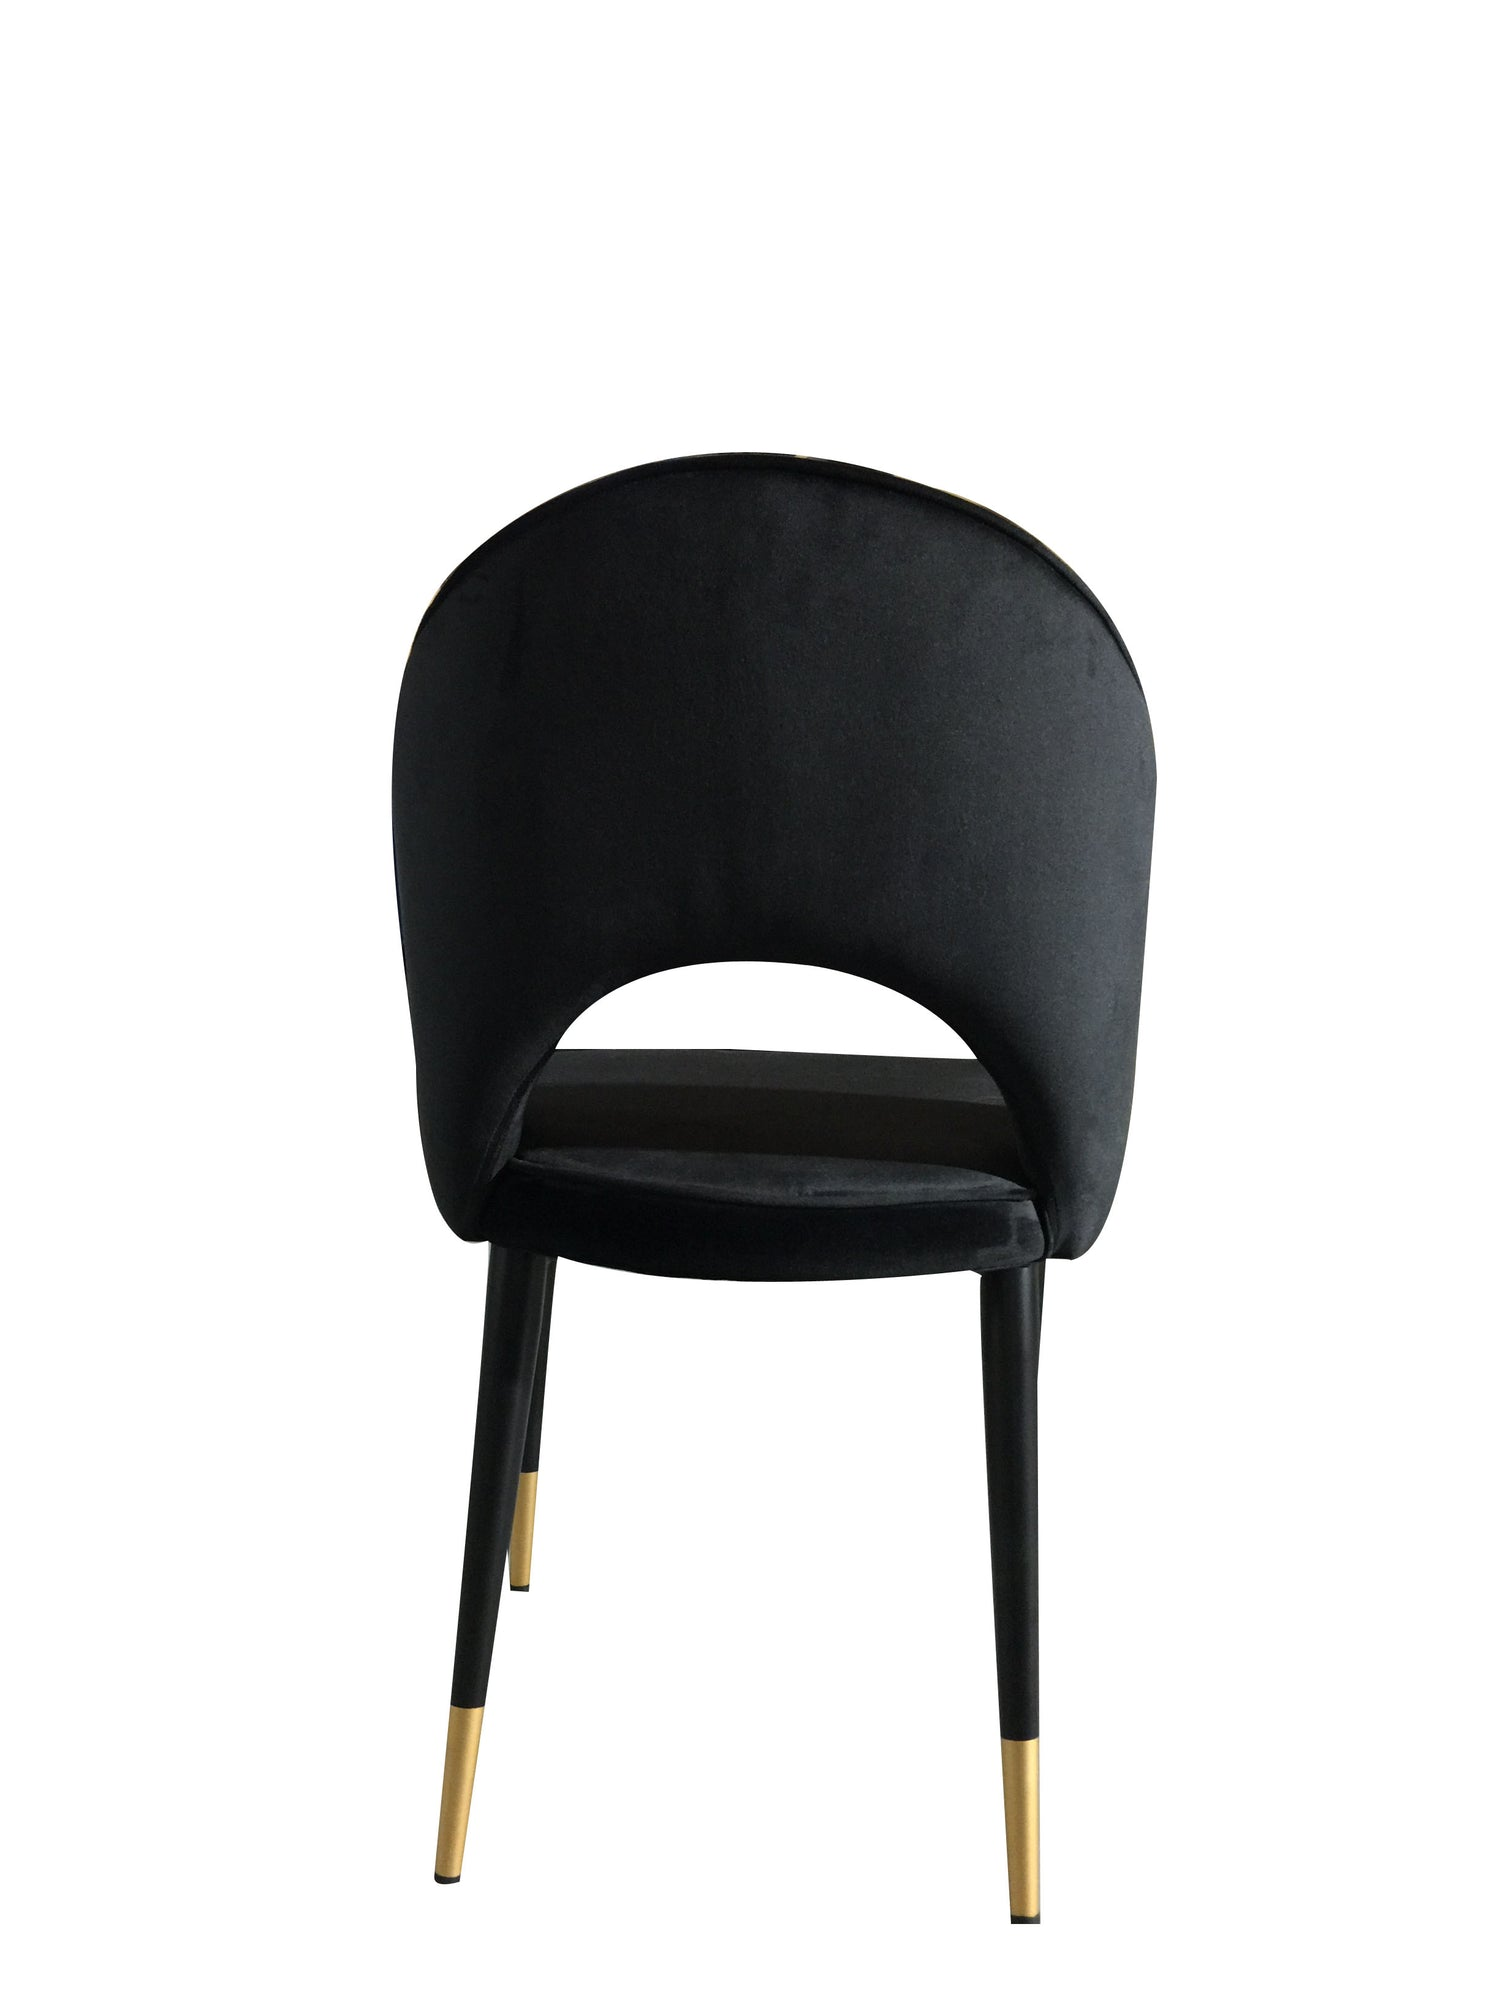 Bourdain Dining Chair Black Velvet Future Classics Furniture